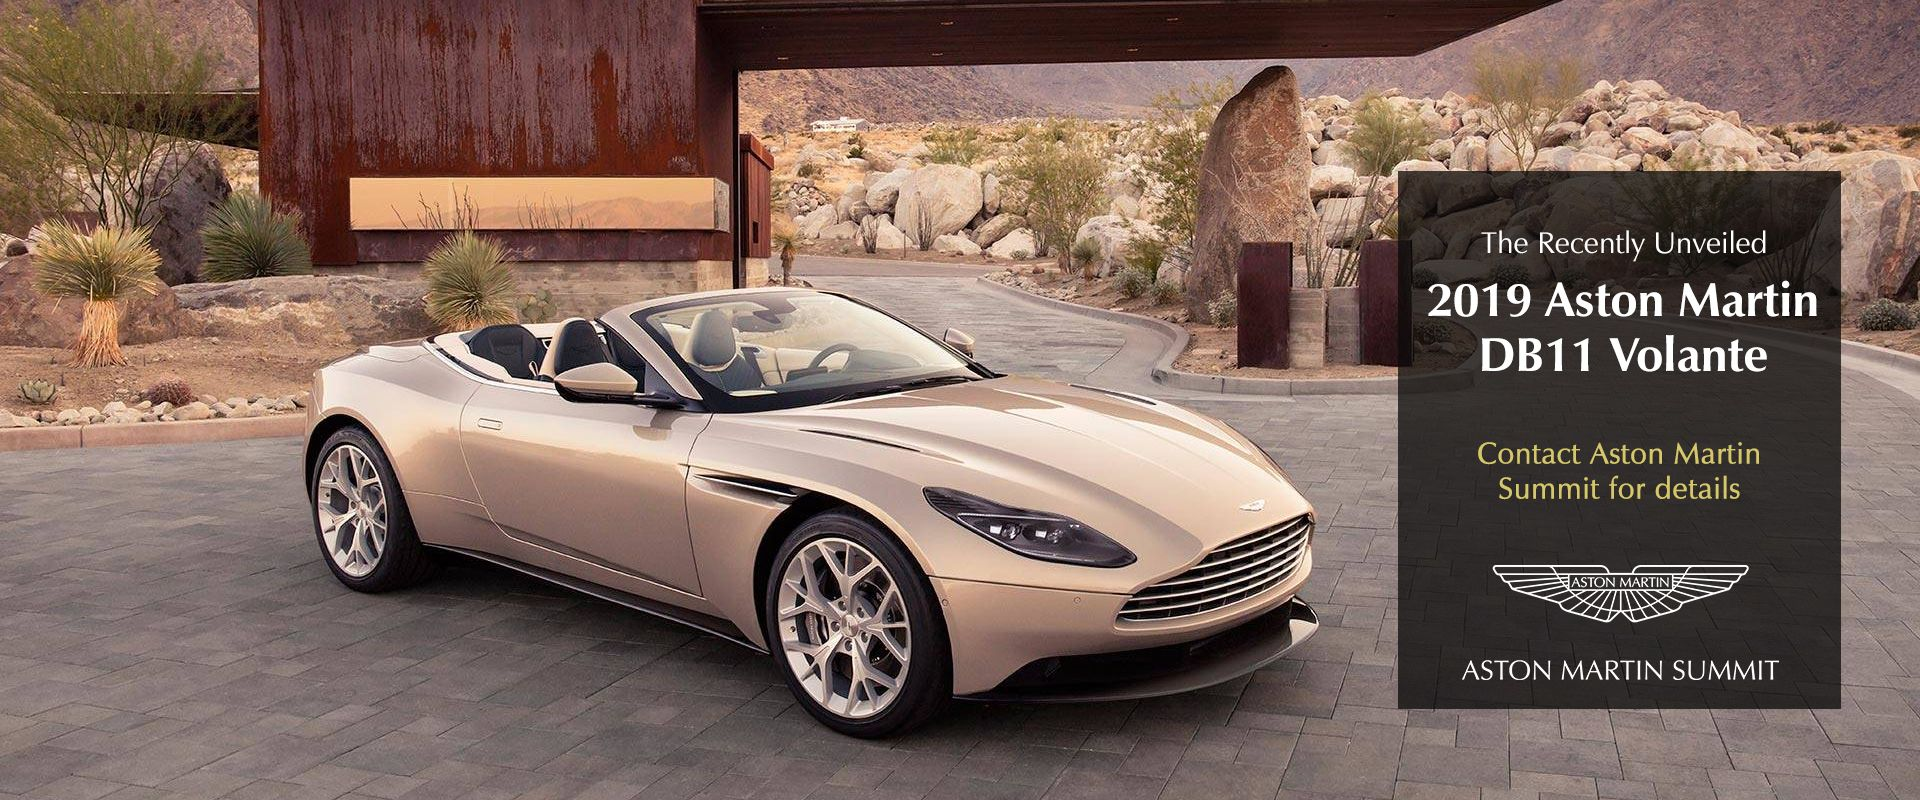 Aston Martin Dealer Summit NJ New Used Aston Martin For Sale - Aston martin dealership florida